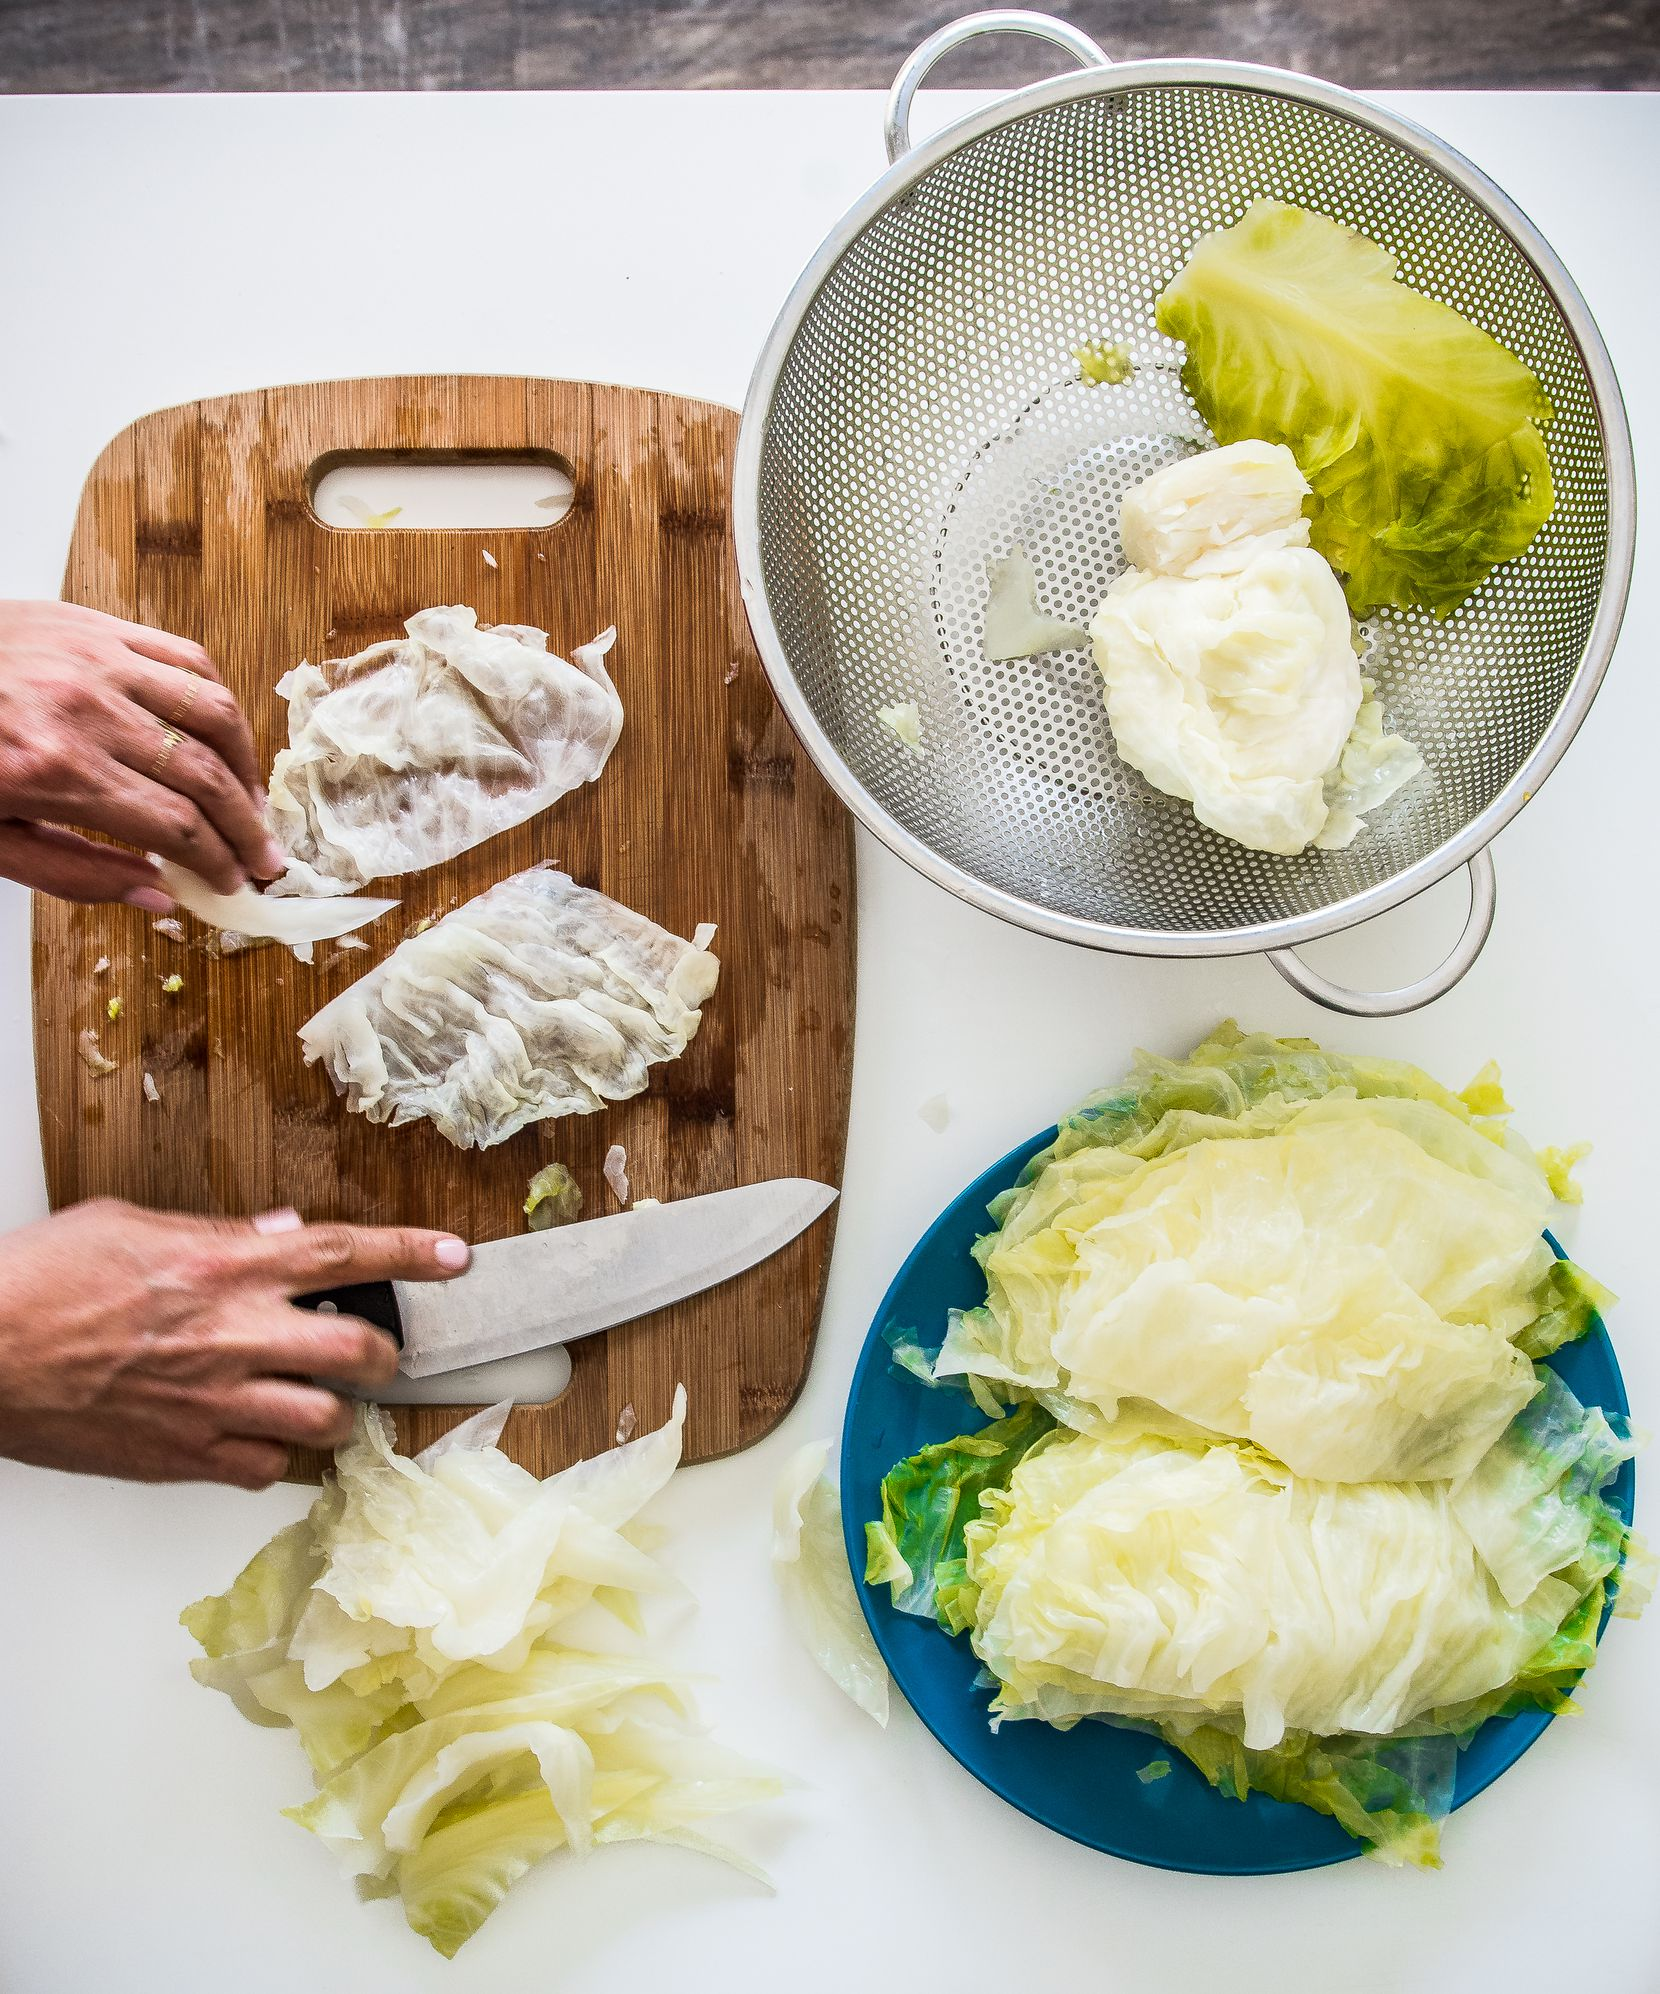 Tamara Abuomar prepares cabbage in her kitchen in Plano.